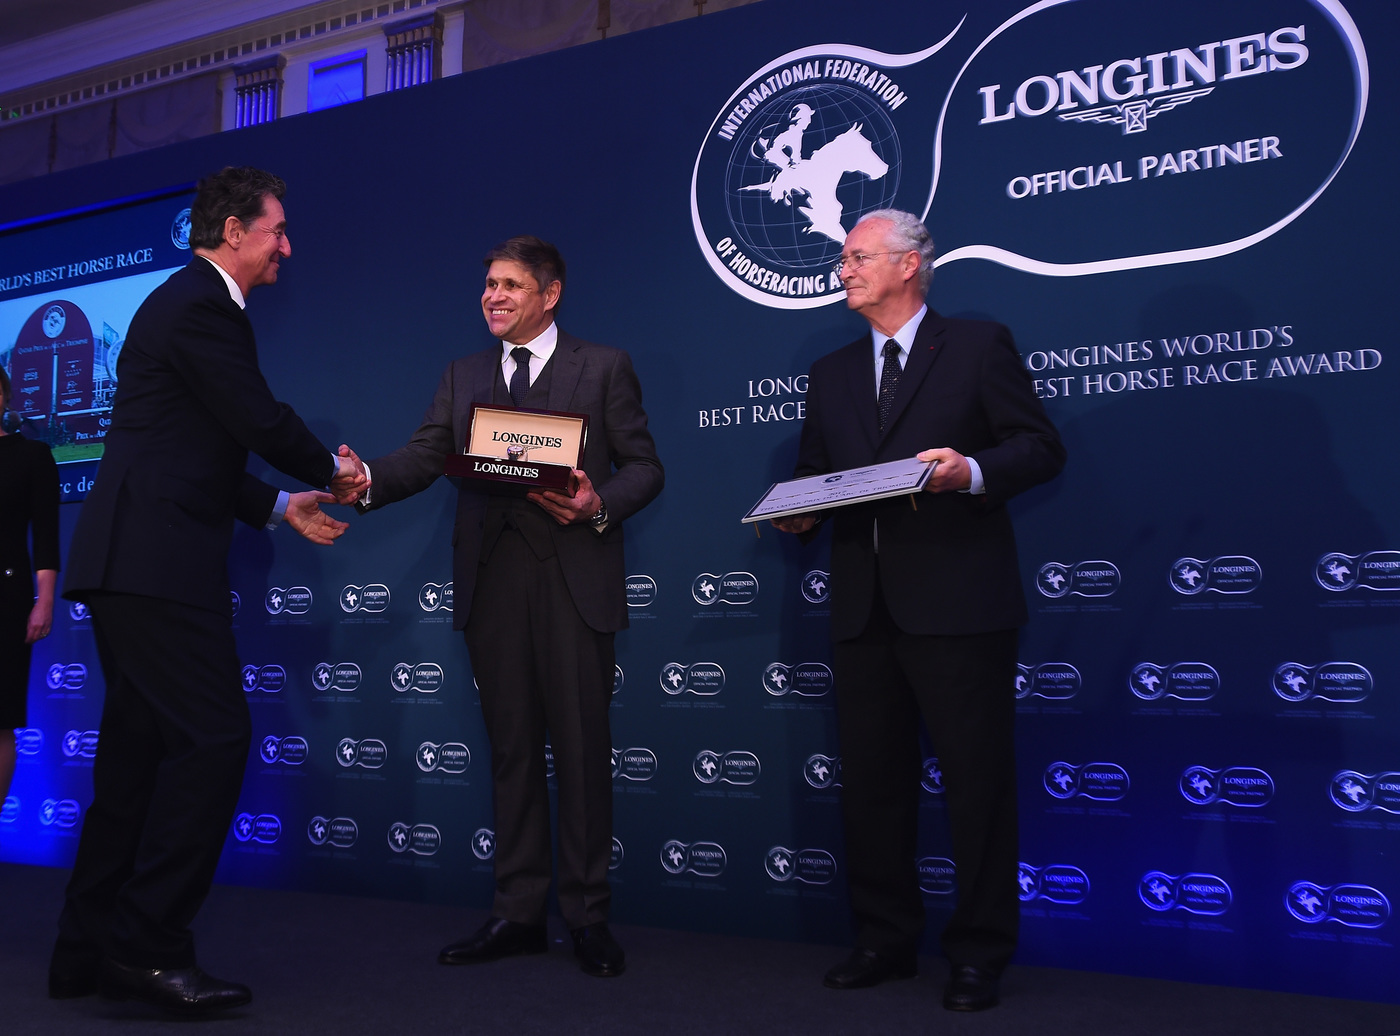 Longines Flat Racing Event: Arrogate crowned the Longines World's Best Racehorse for the second year in a row, Qatar Prix de l'Arc de Triomphe named Longines World's Best Horse Race for the second time 1